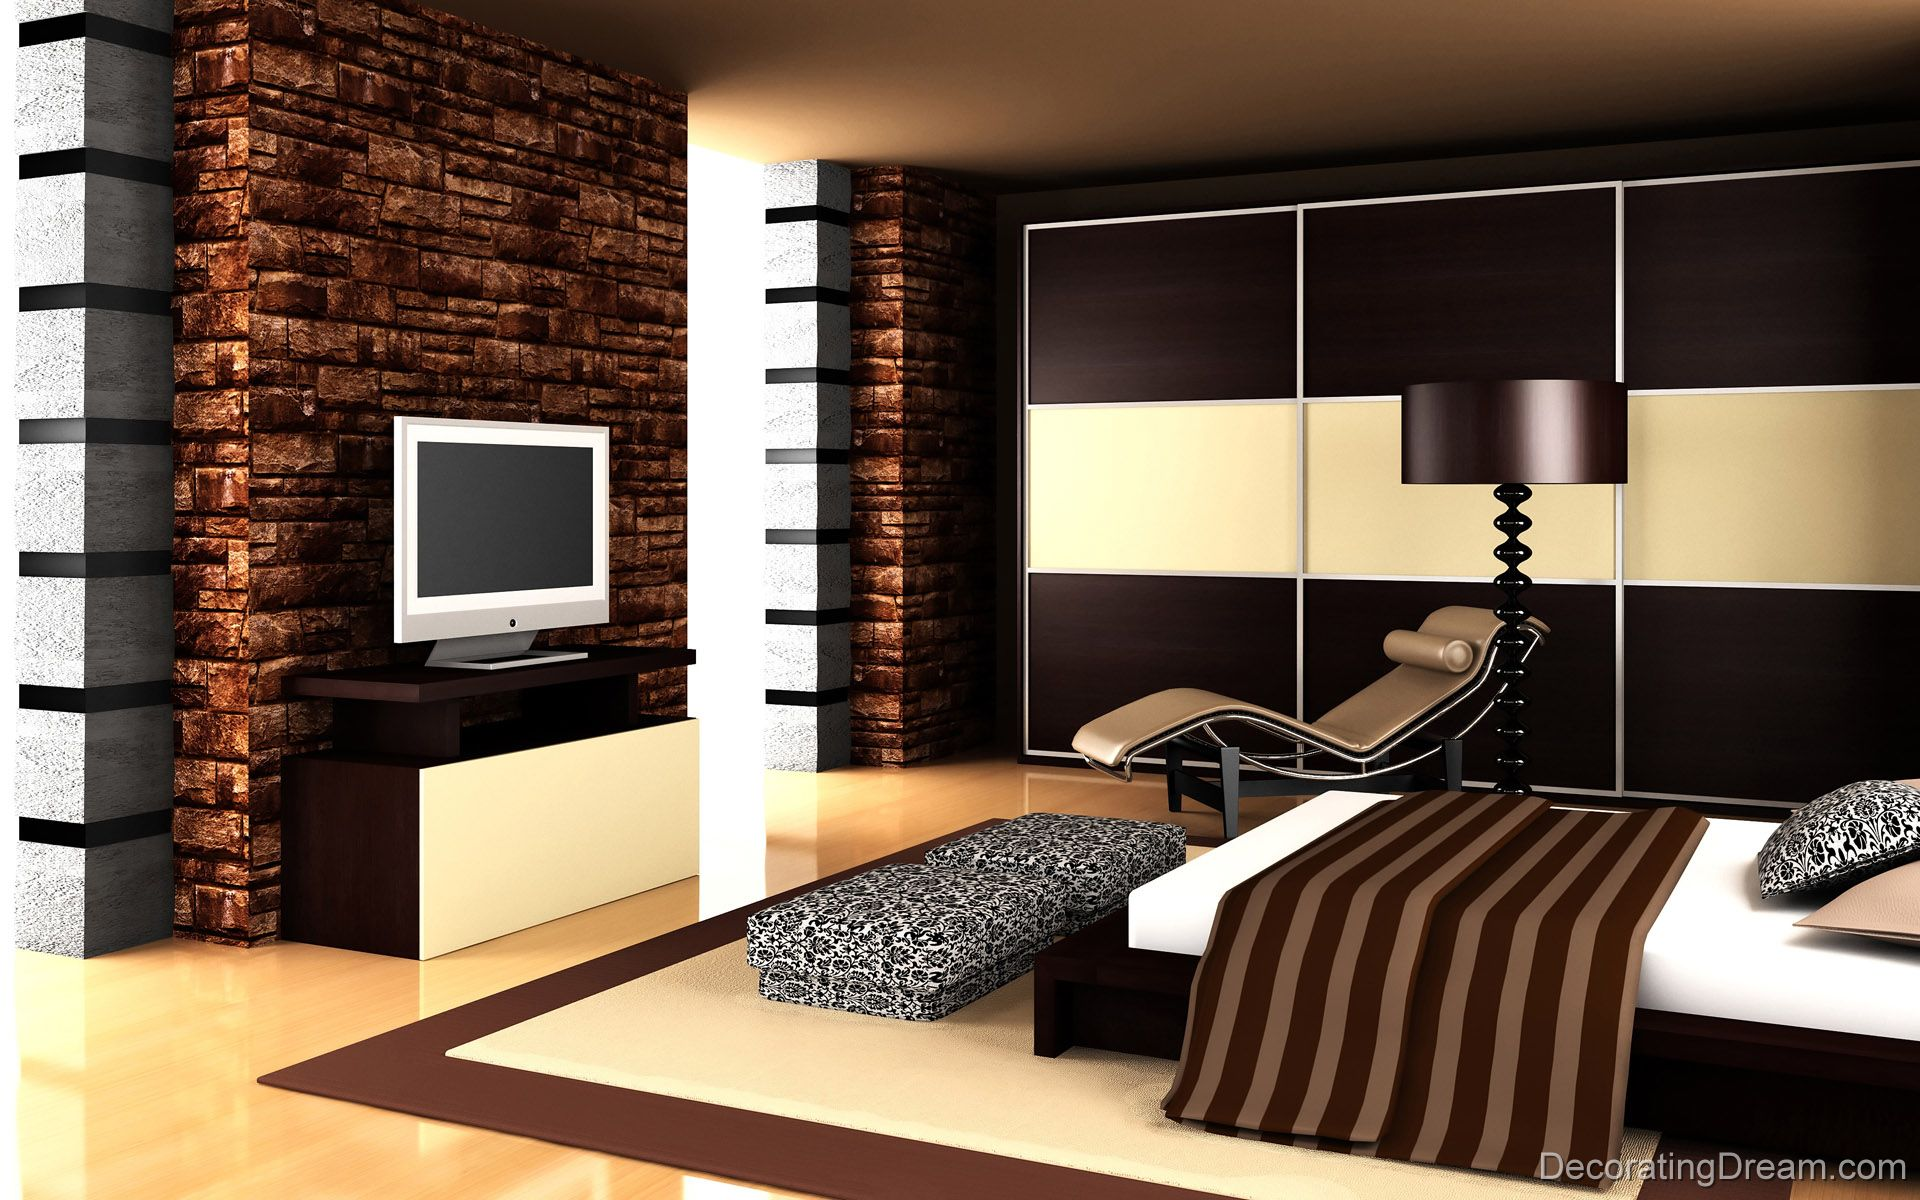 Interiors Archives - Building Guide - house design and building tips ...